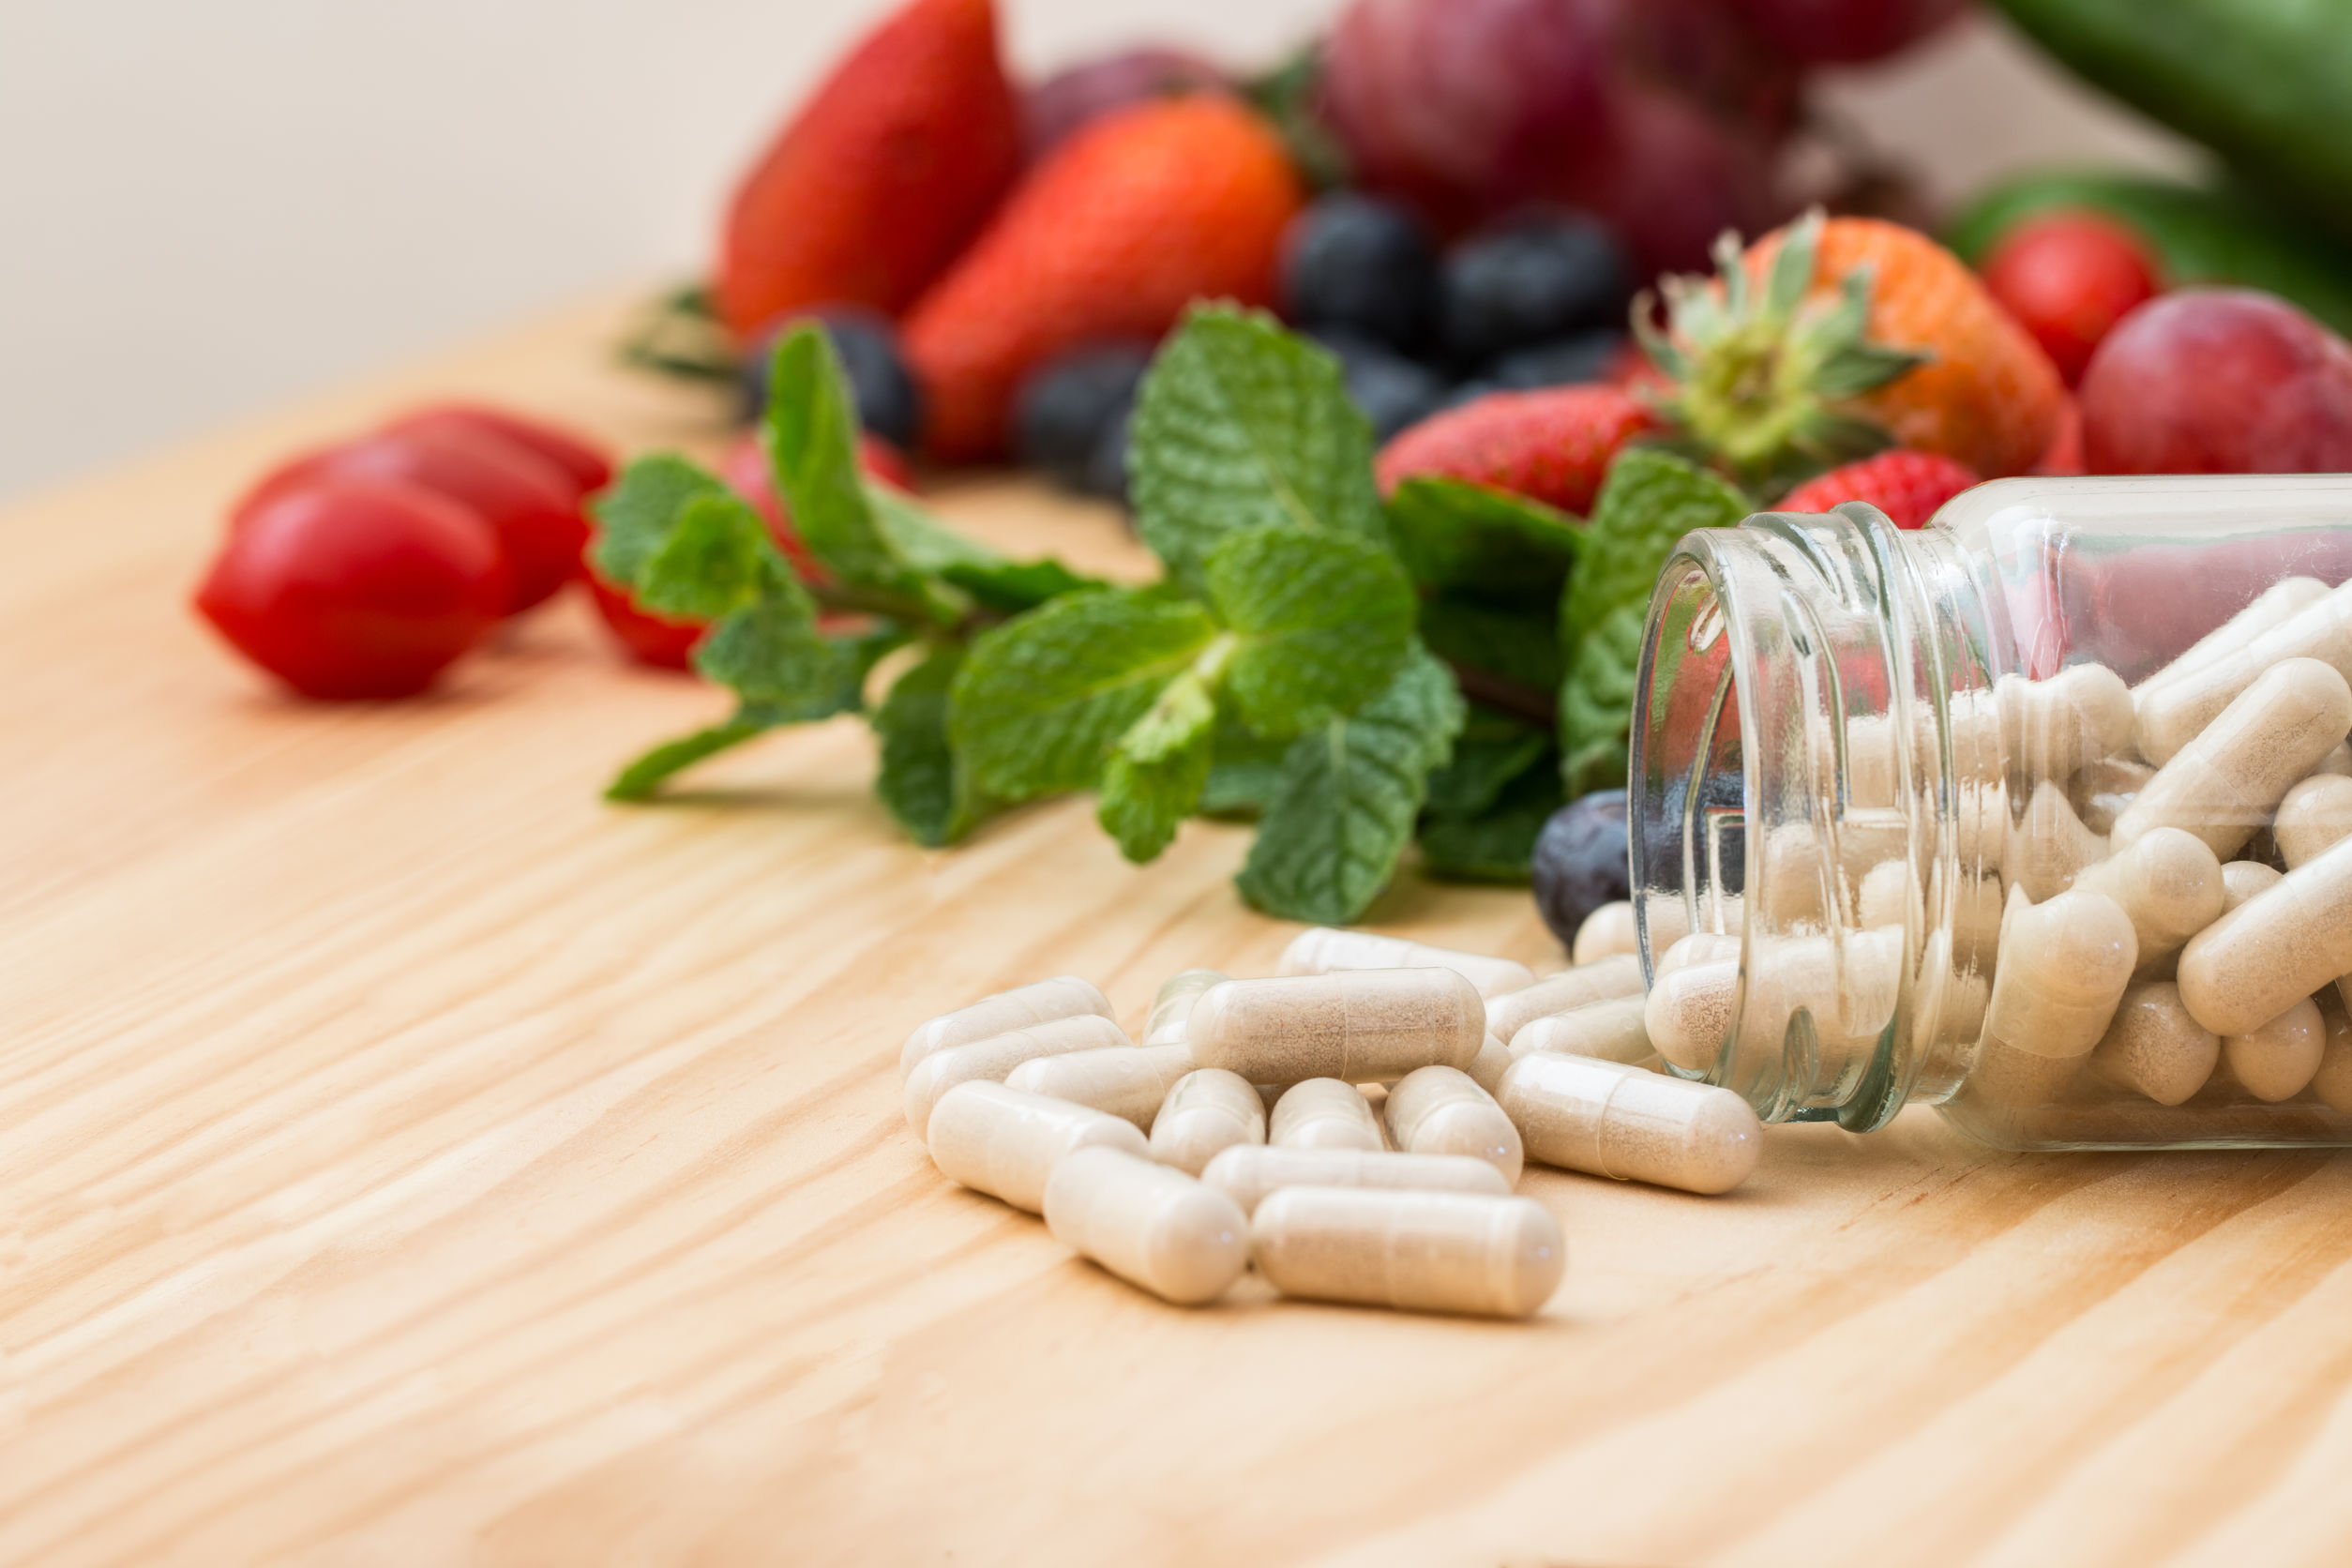 Best Multivitamins 2020: Shopping Guide & Review